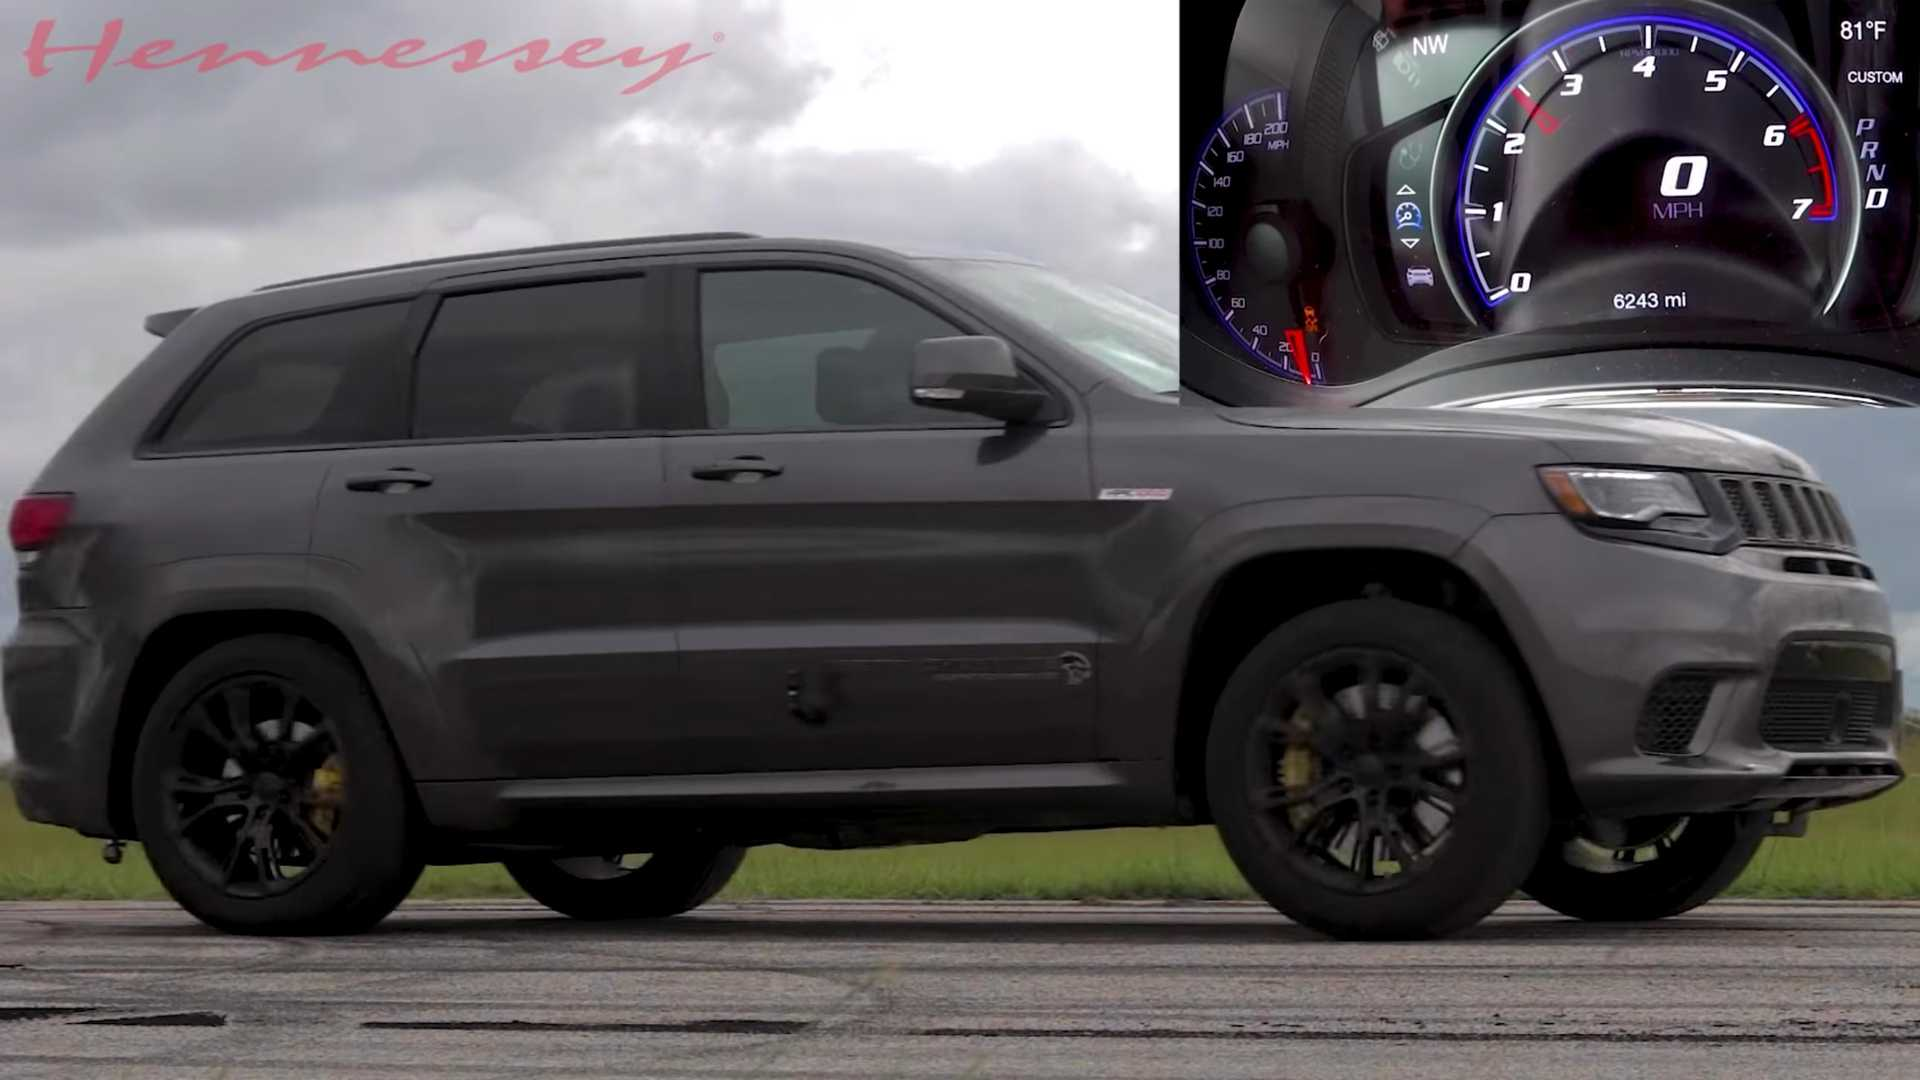 Hennessey's Jeep Trackhawk Puts Its Four-Digit Horsepower To Work